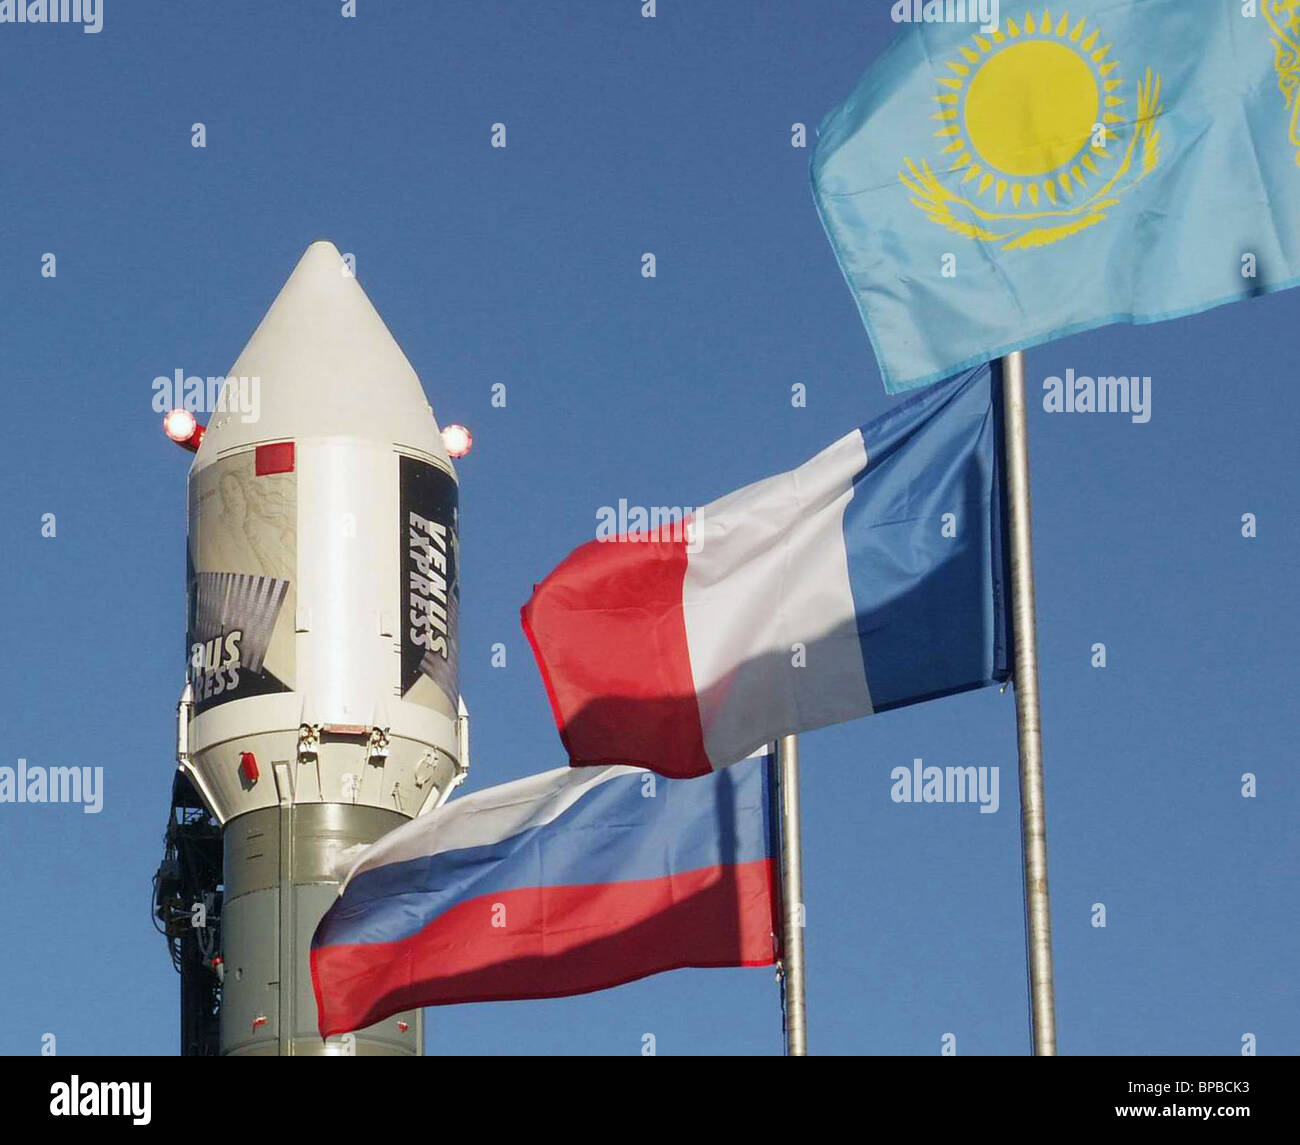 Venus Express to be launched by Soyuz-Fregat rocket from Baikonur Cosmodrome - Stock Image